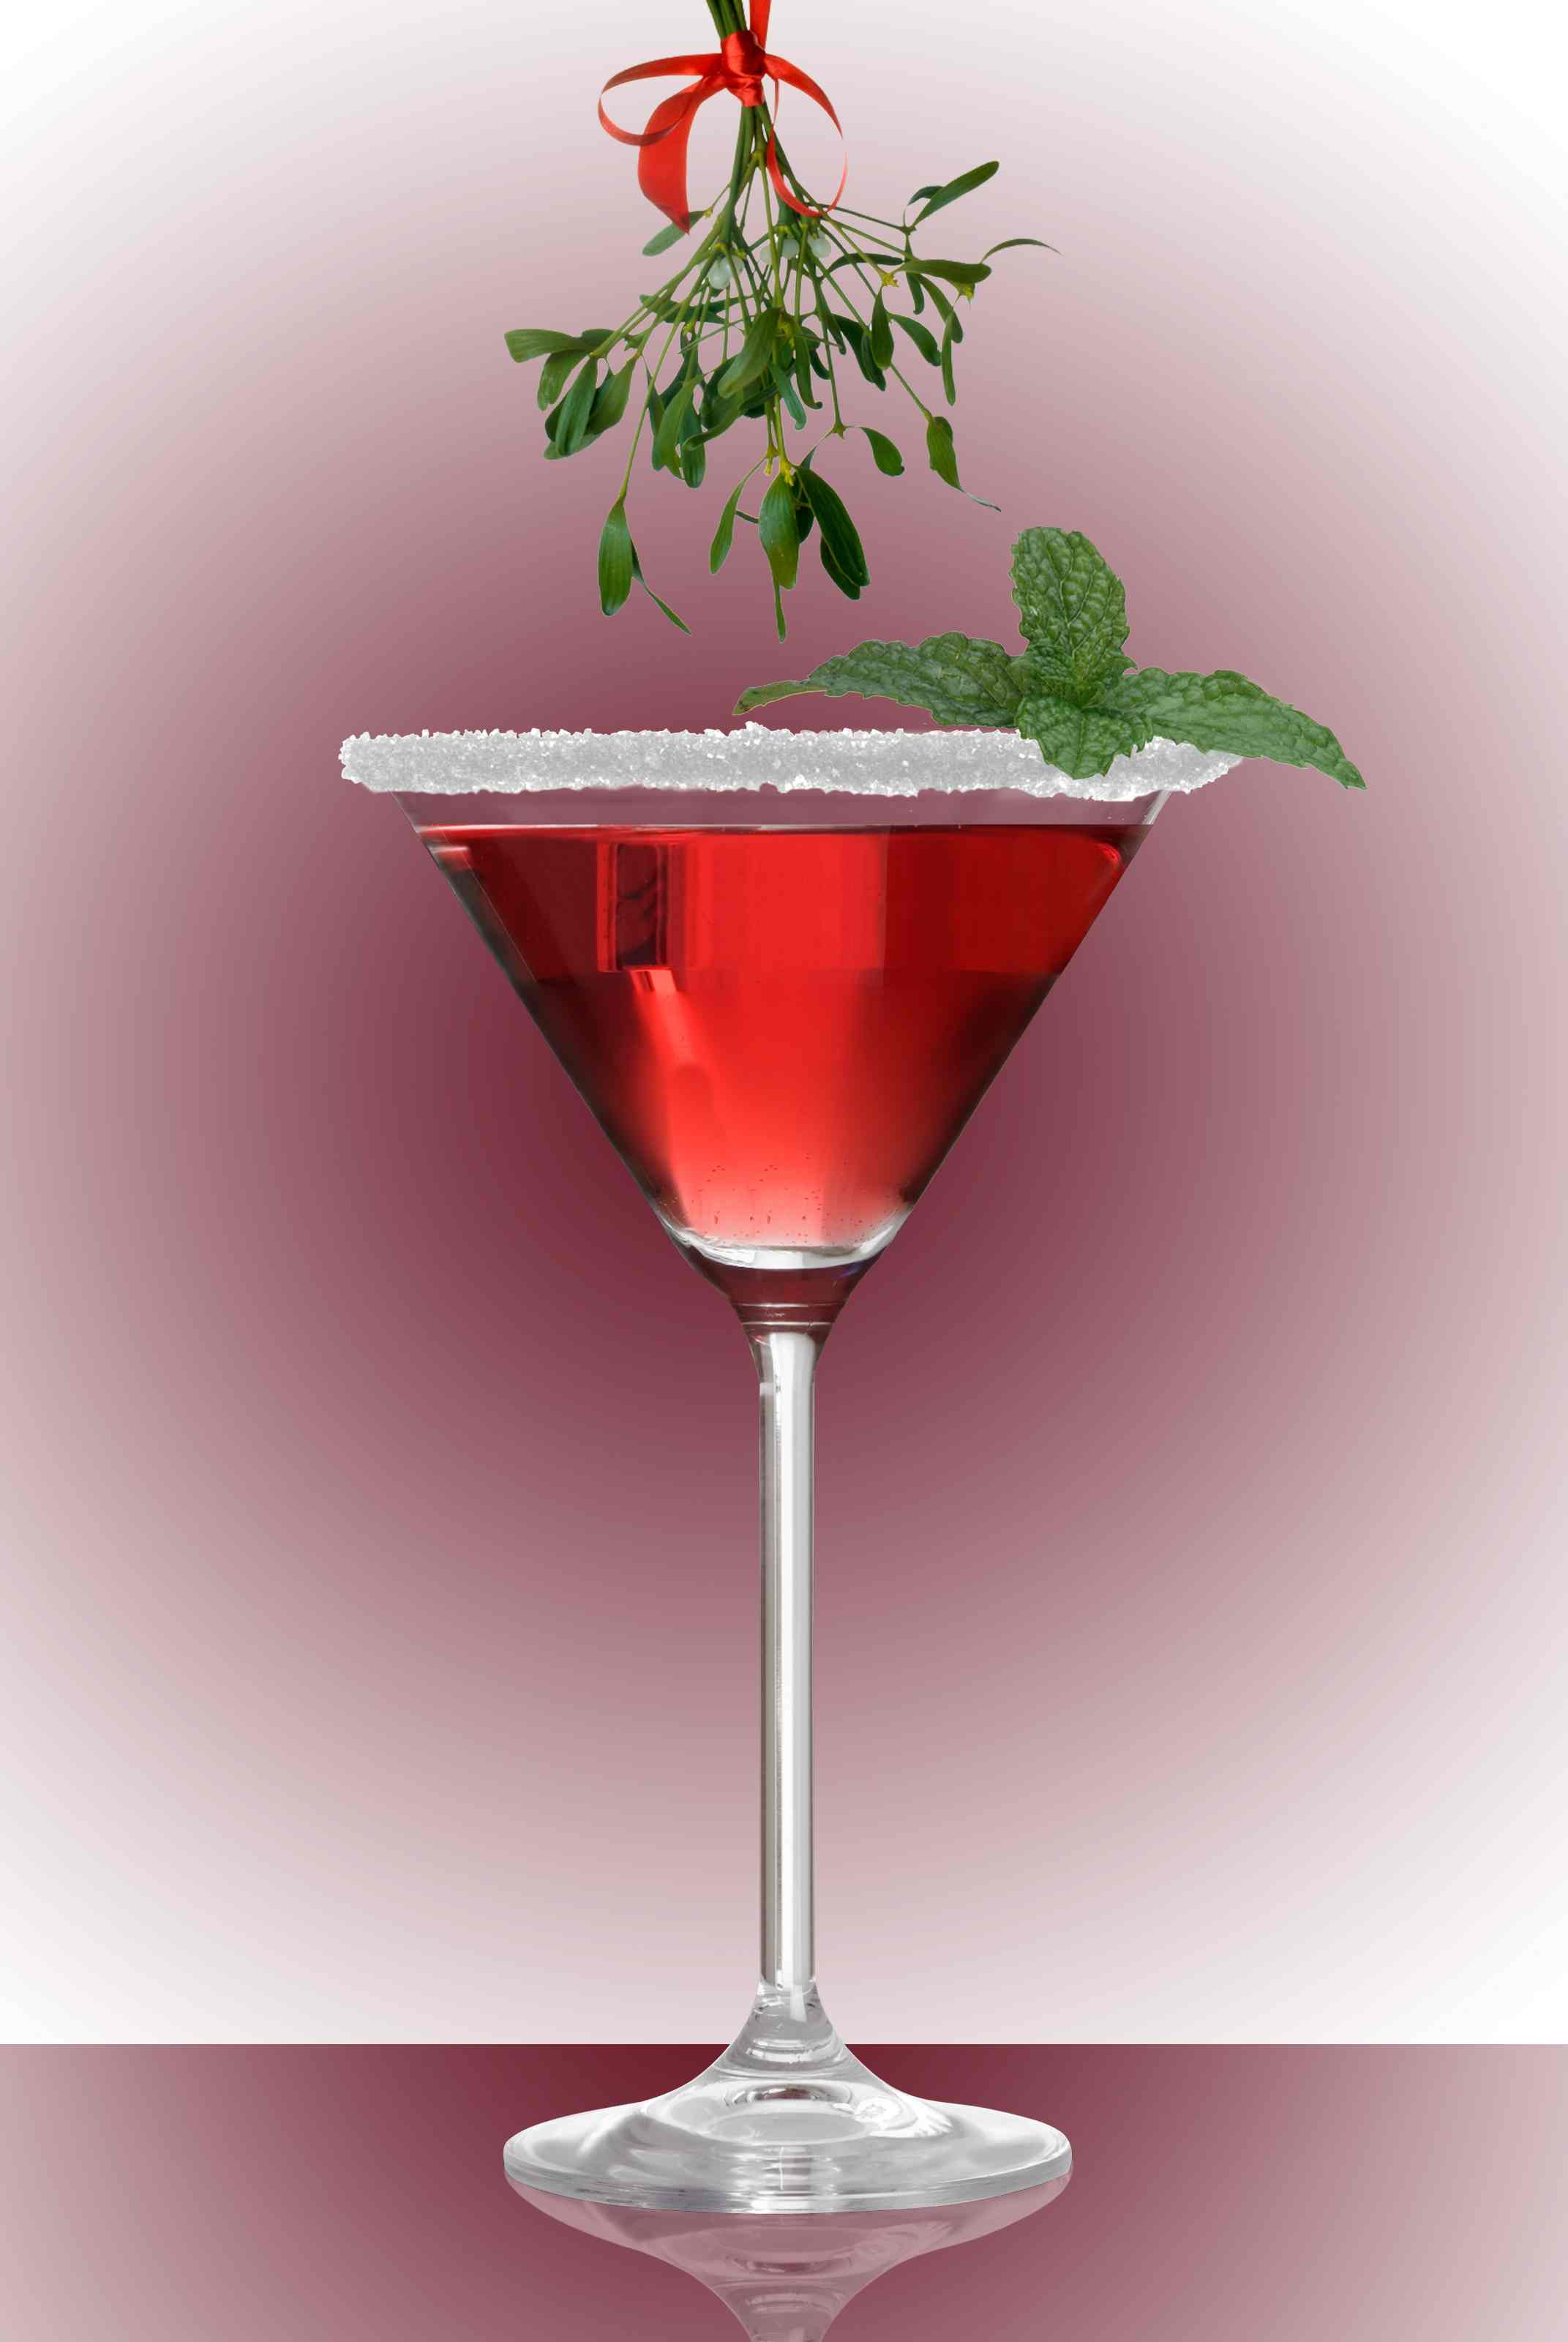 Vodka Christmas Drinks  Vodka y Good Holiday Drinks Brought to you by Finlandia